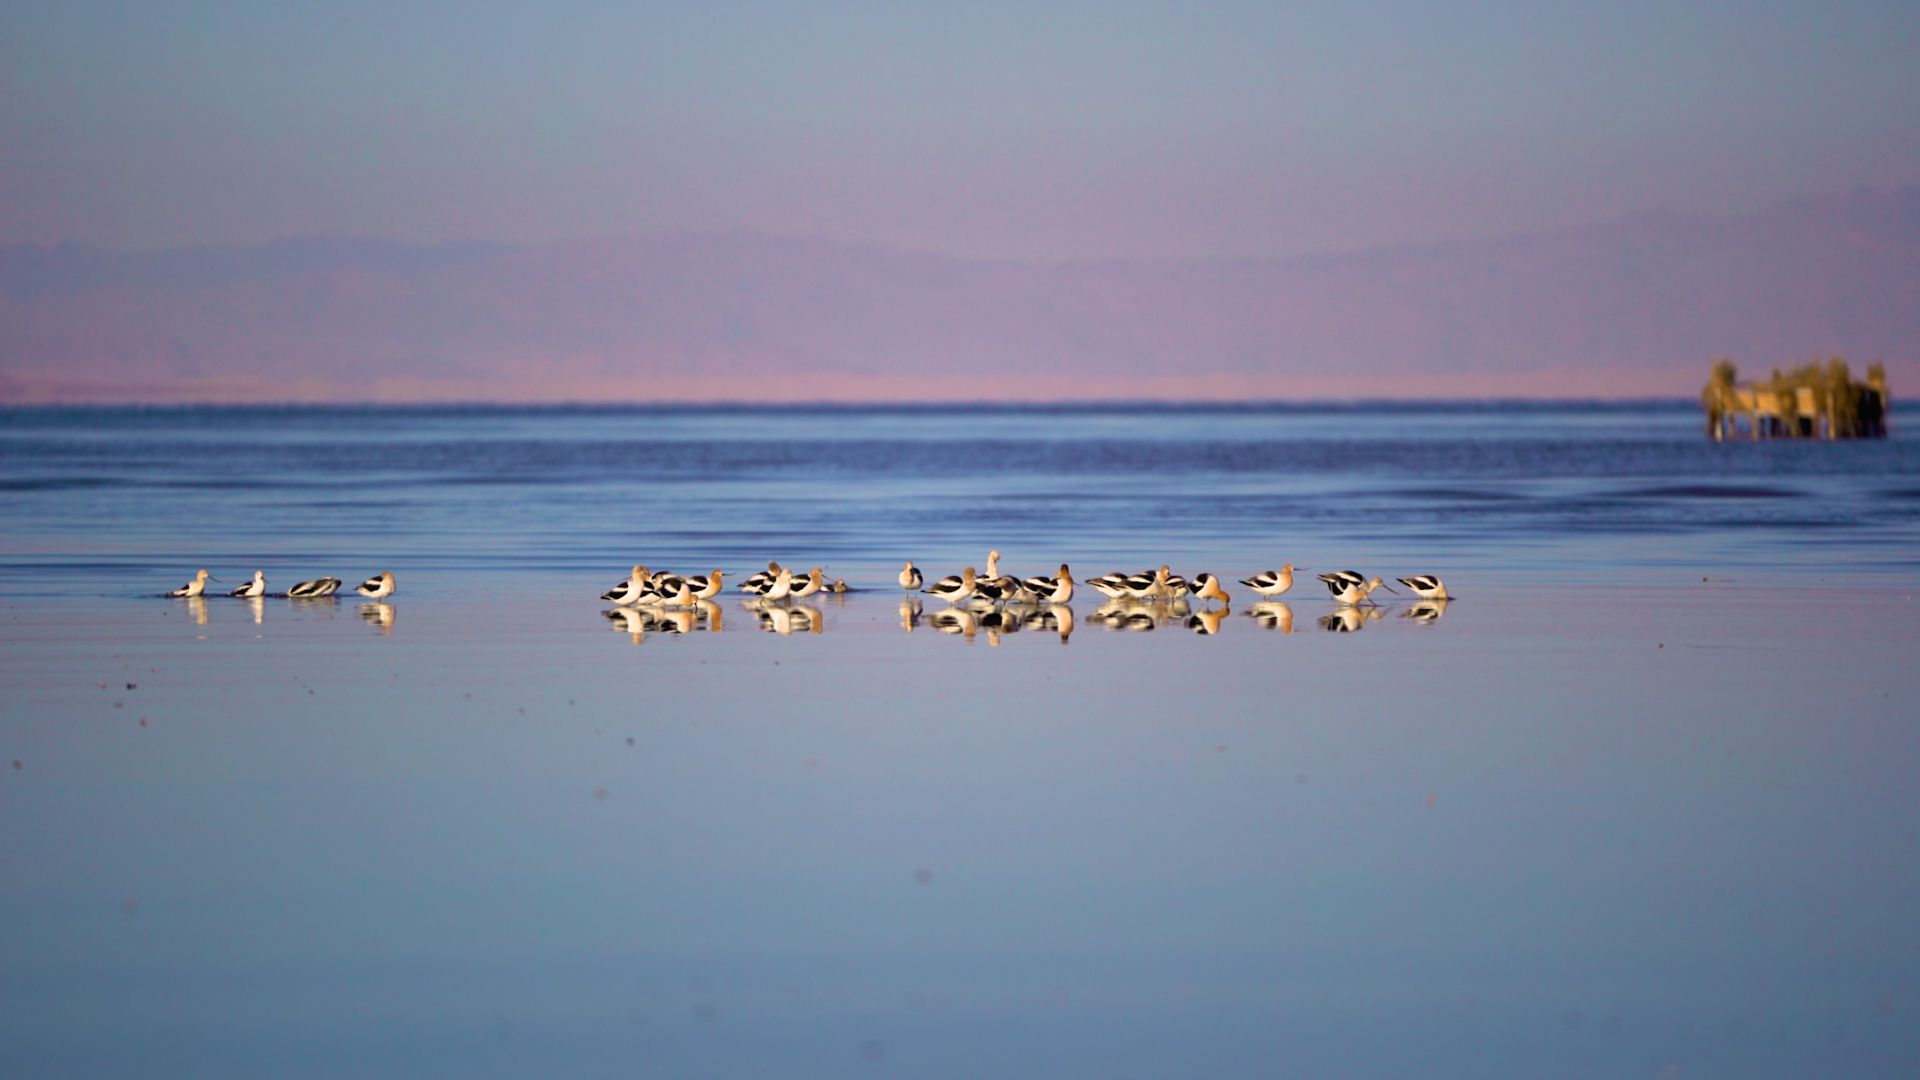 flock of birds sitting on water at sunset